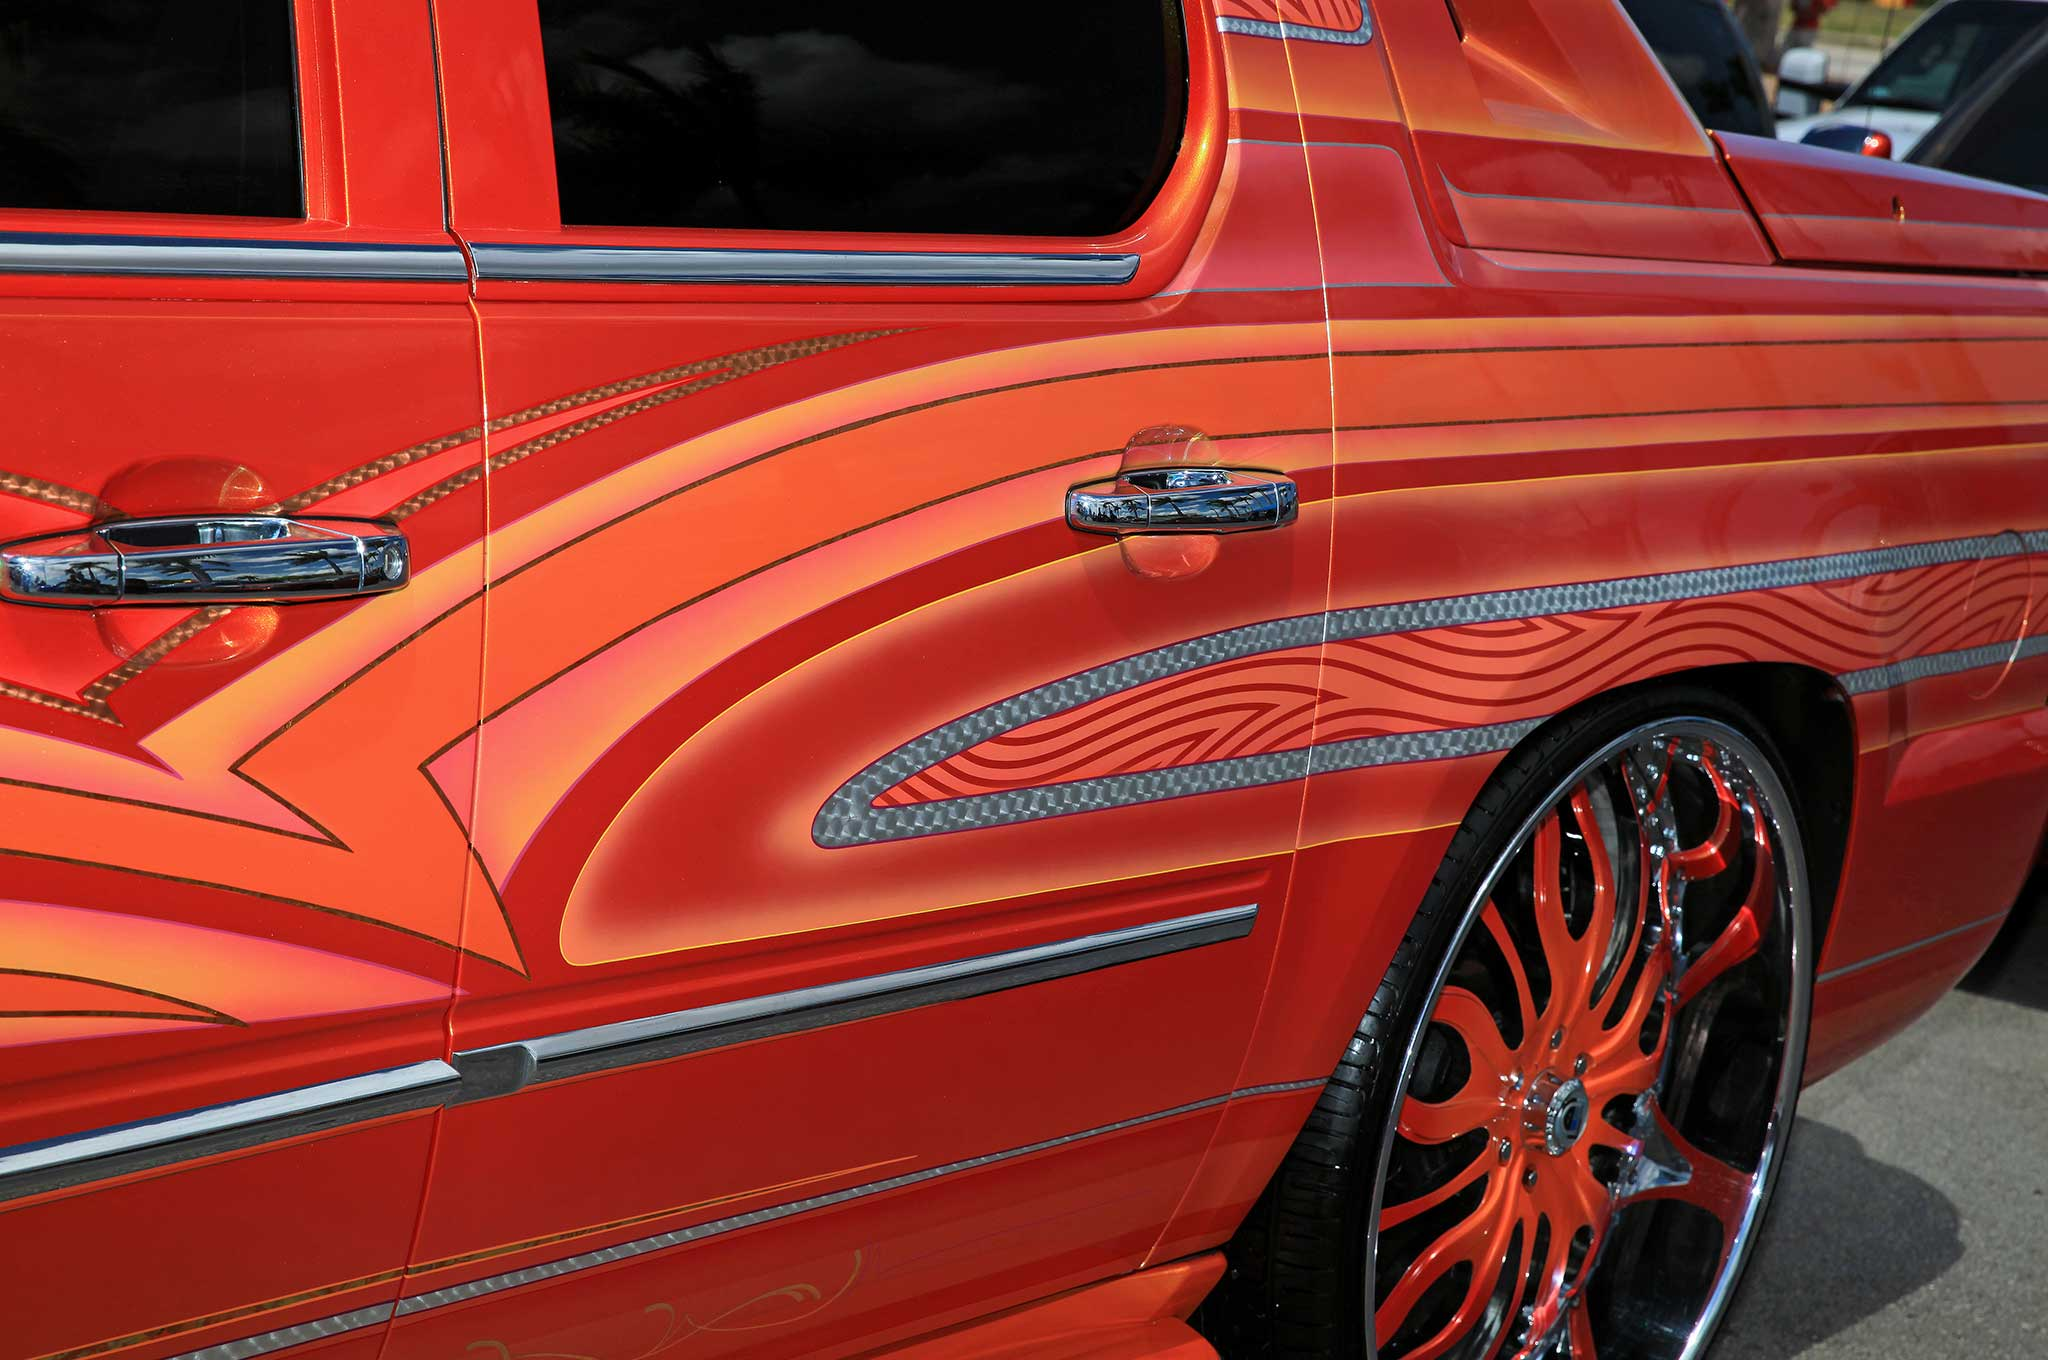 How Much Is A Cadillac Truck >> Lowrider Paint Patterns | www.pixshark.com - Images Galleries With A Bite!